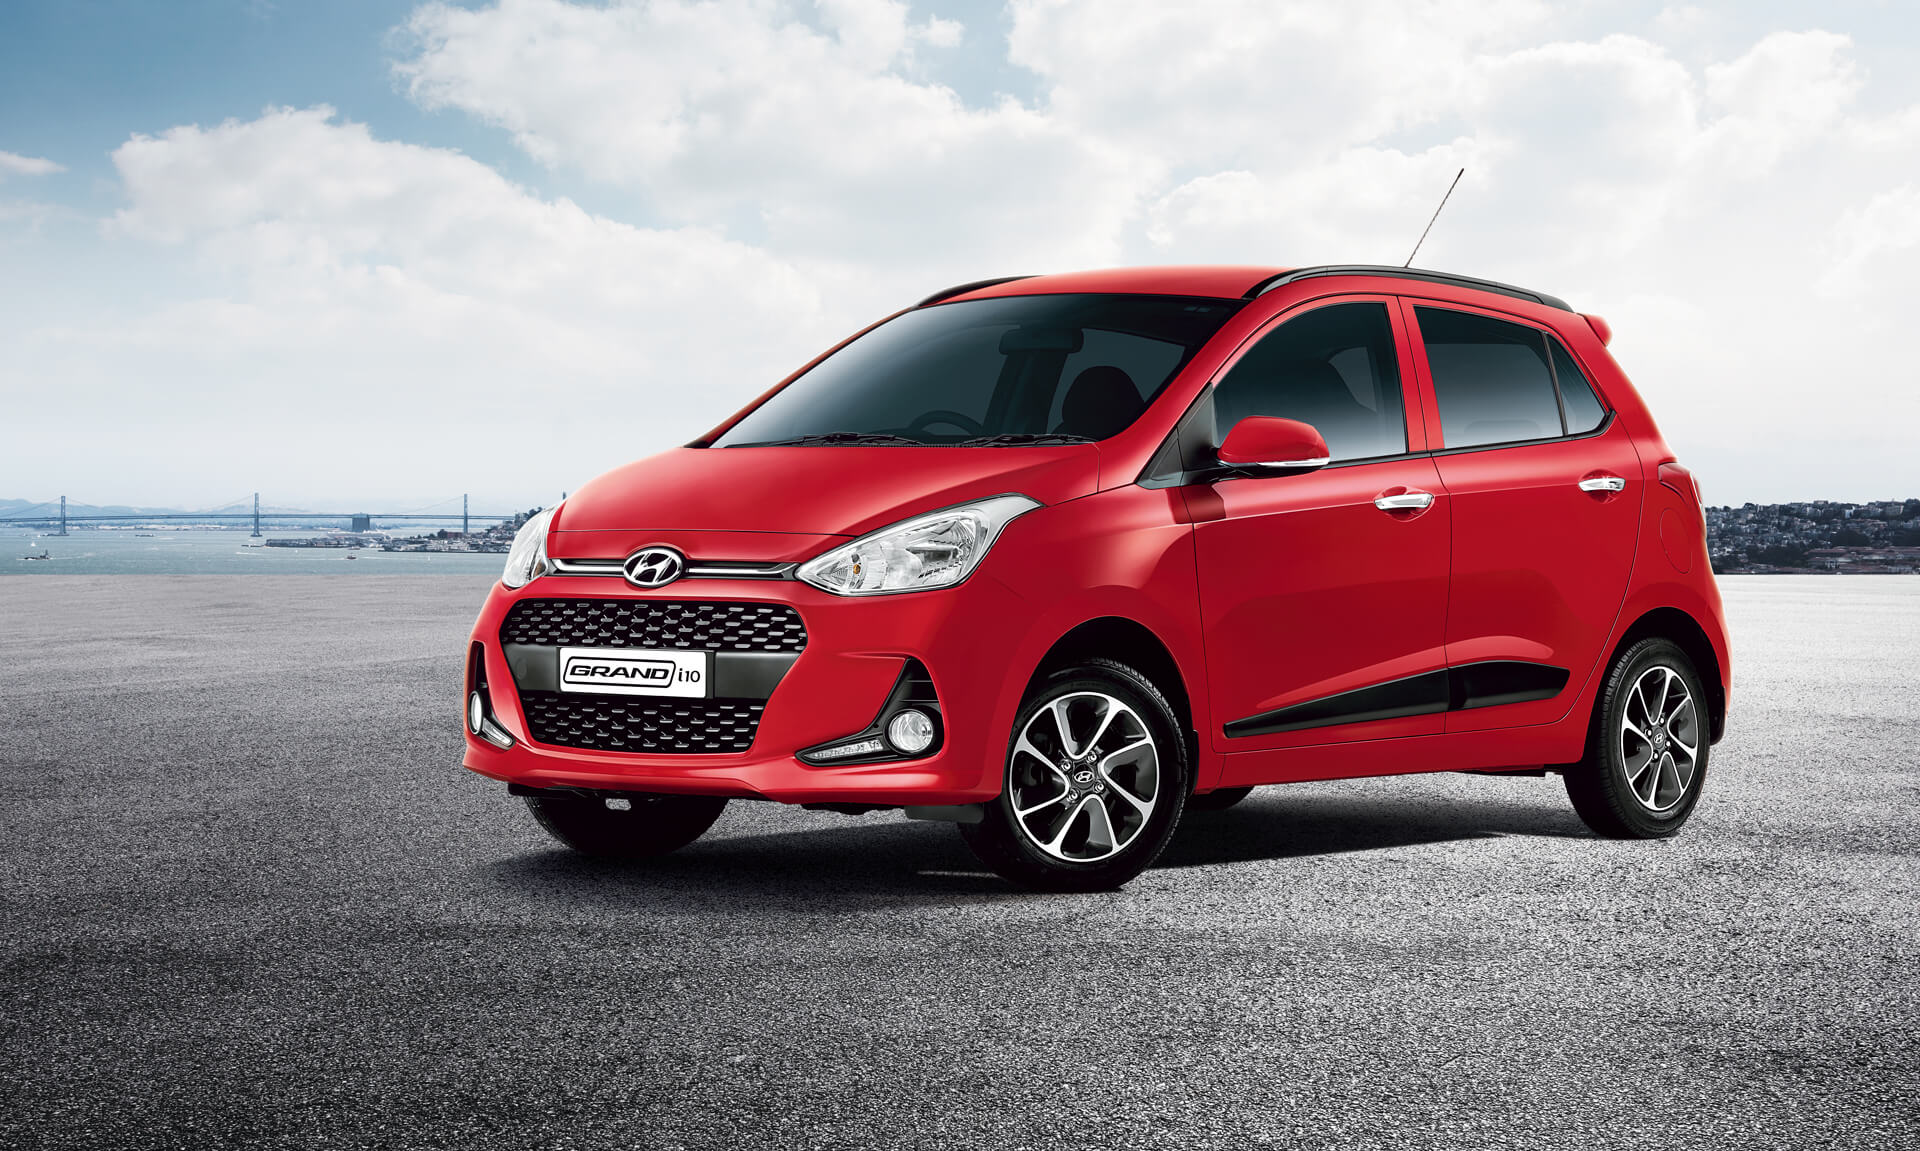 Hyundai Grand i10 Special Edition Car